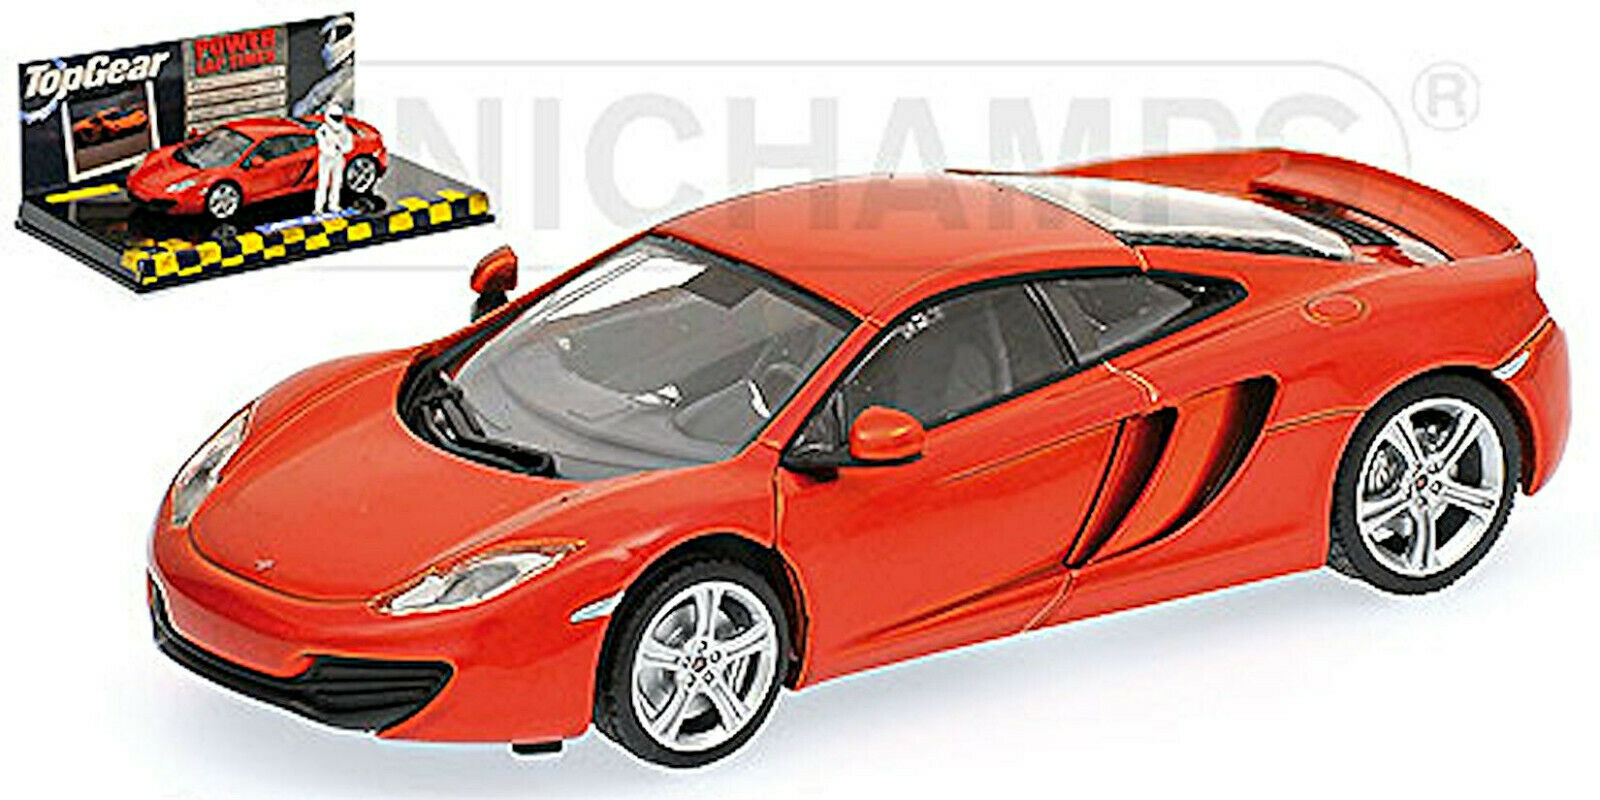 McLaren mp4-12c top Gear 2011 Orange Metallic 1 43 MINICHAMPS